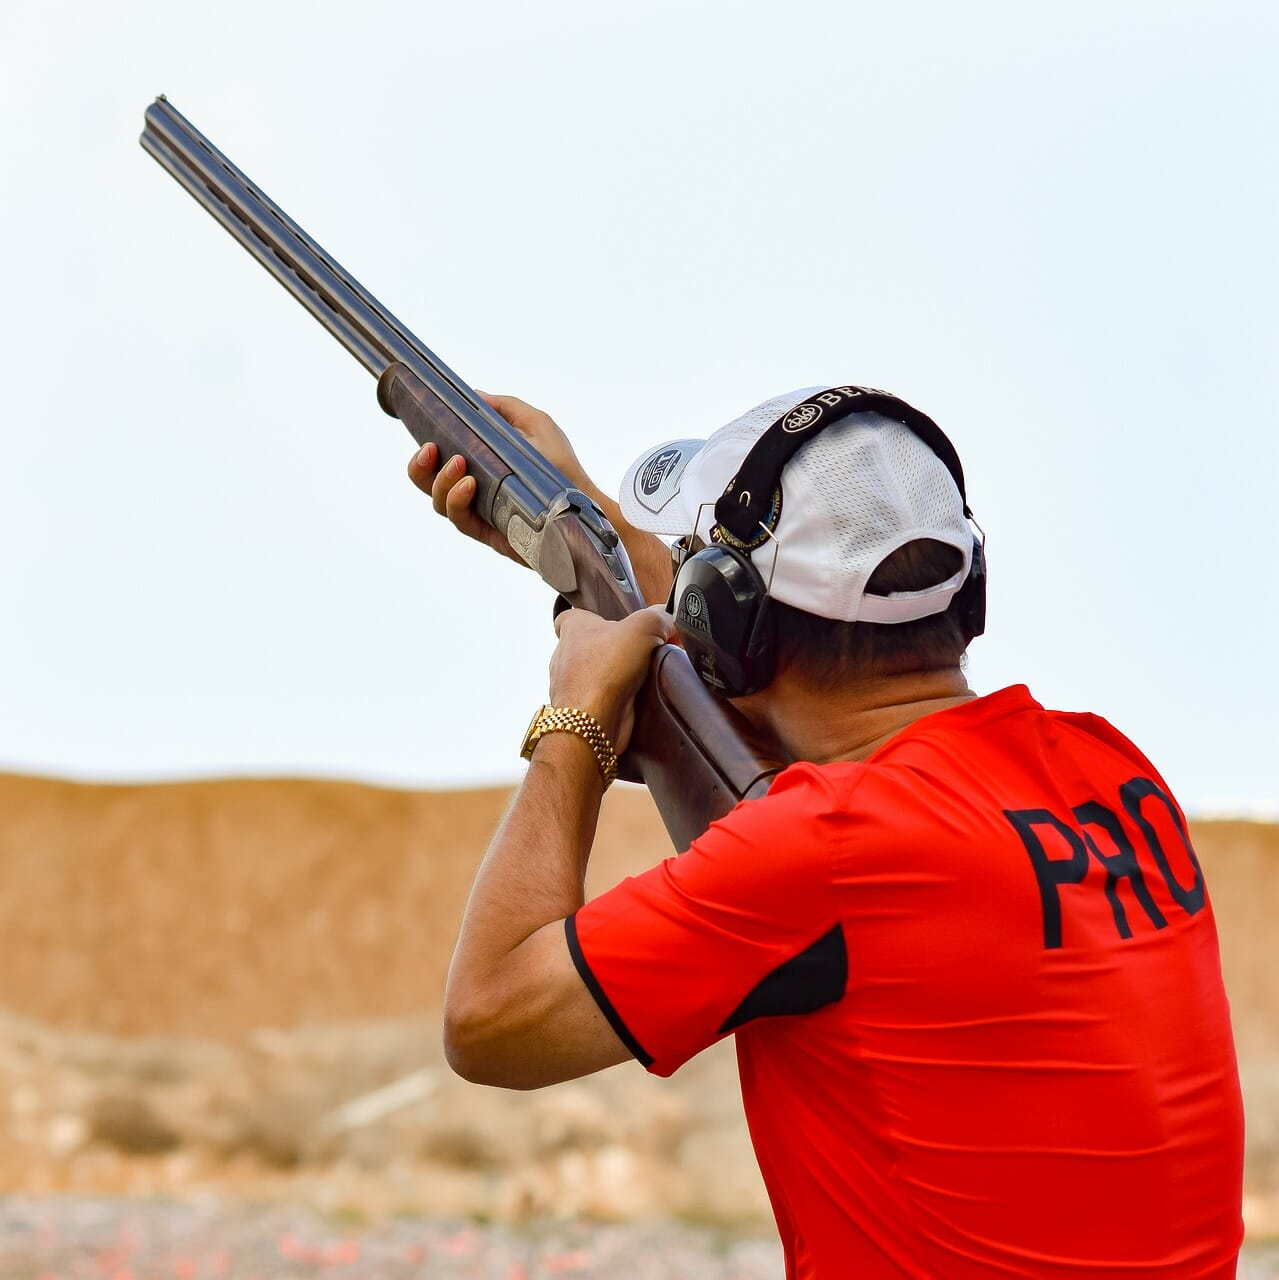 Top 6 Best Ear Protection for Shooting: The ultimate guide